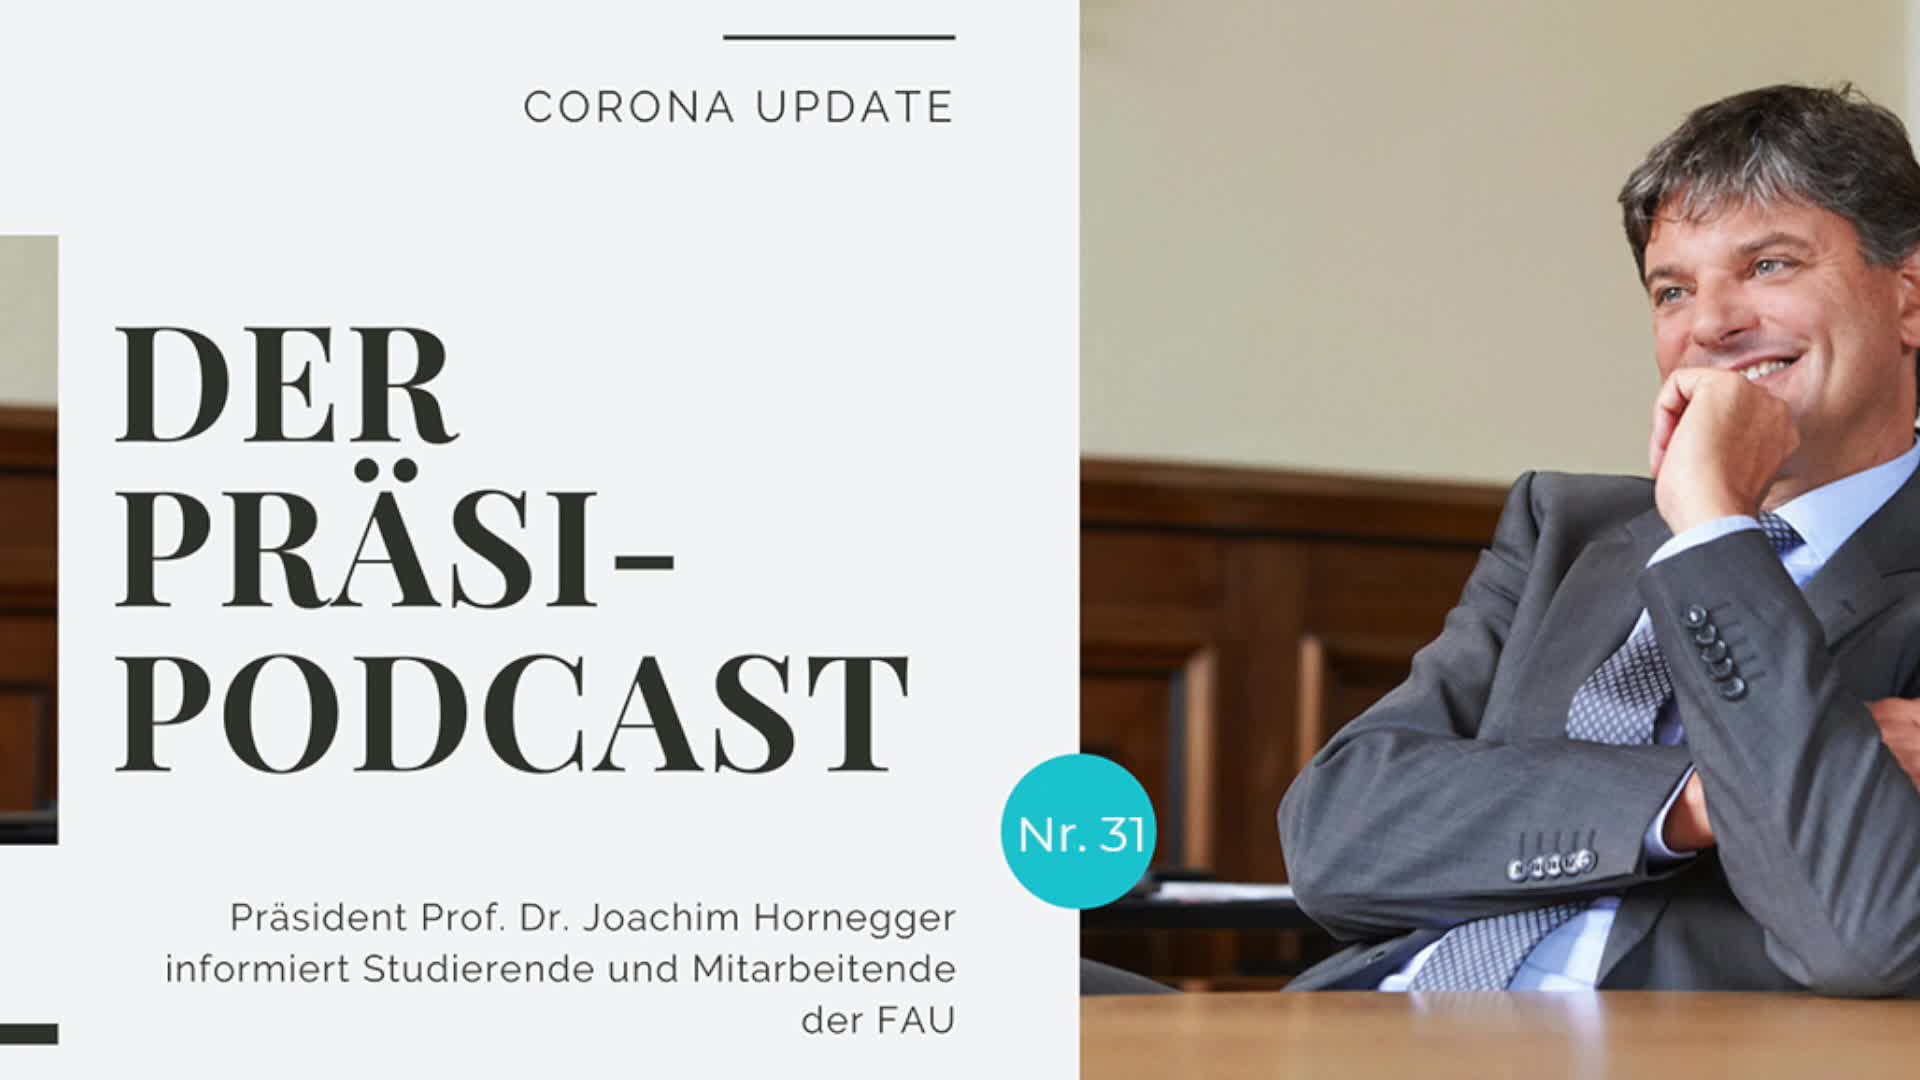 """Der Präsi-Podcast"" vom 18. November 2020 preview image"